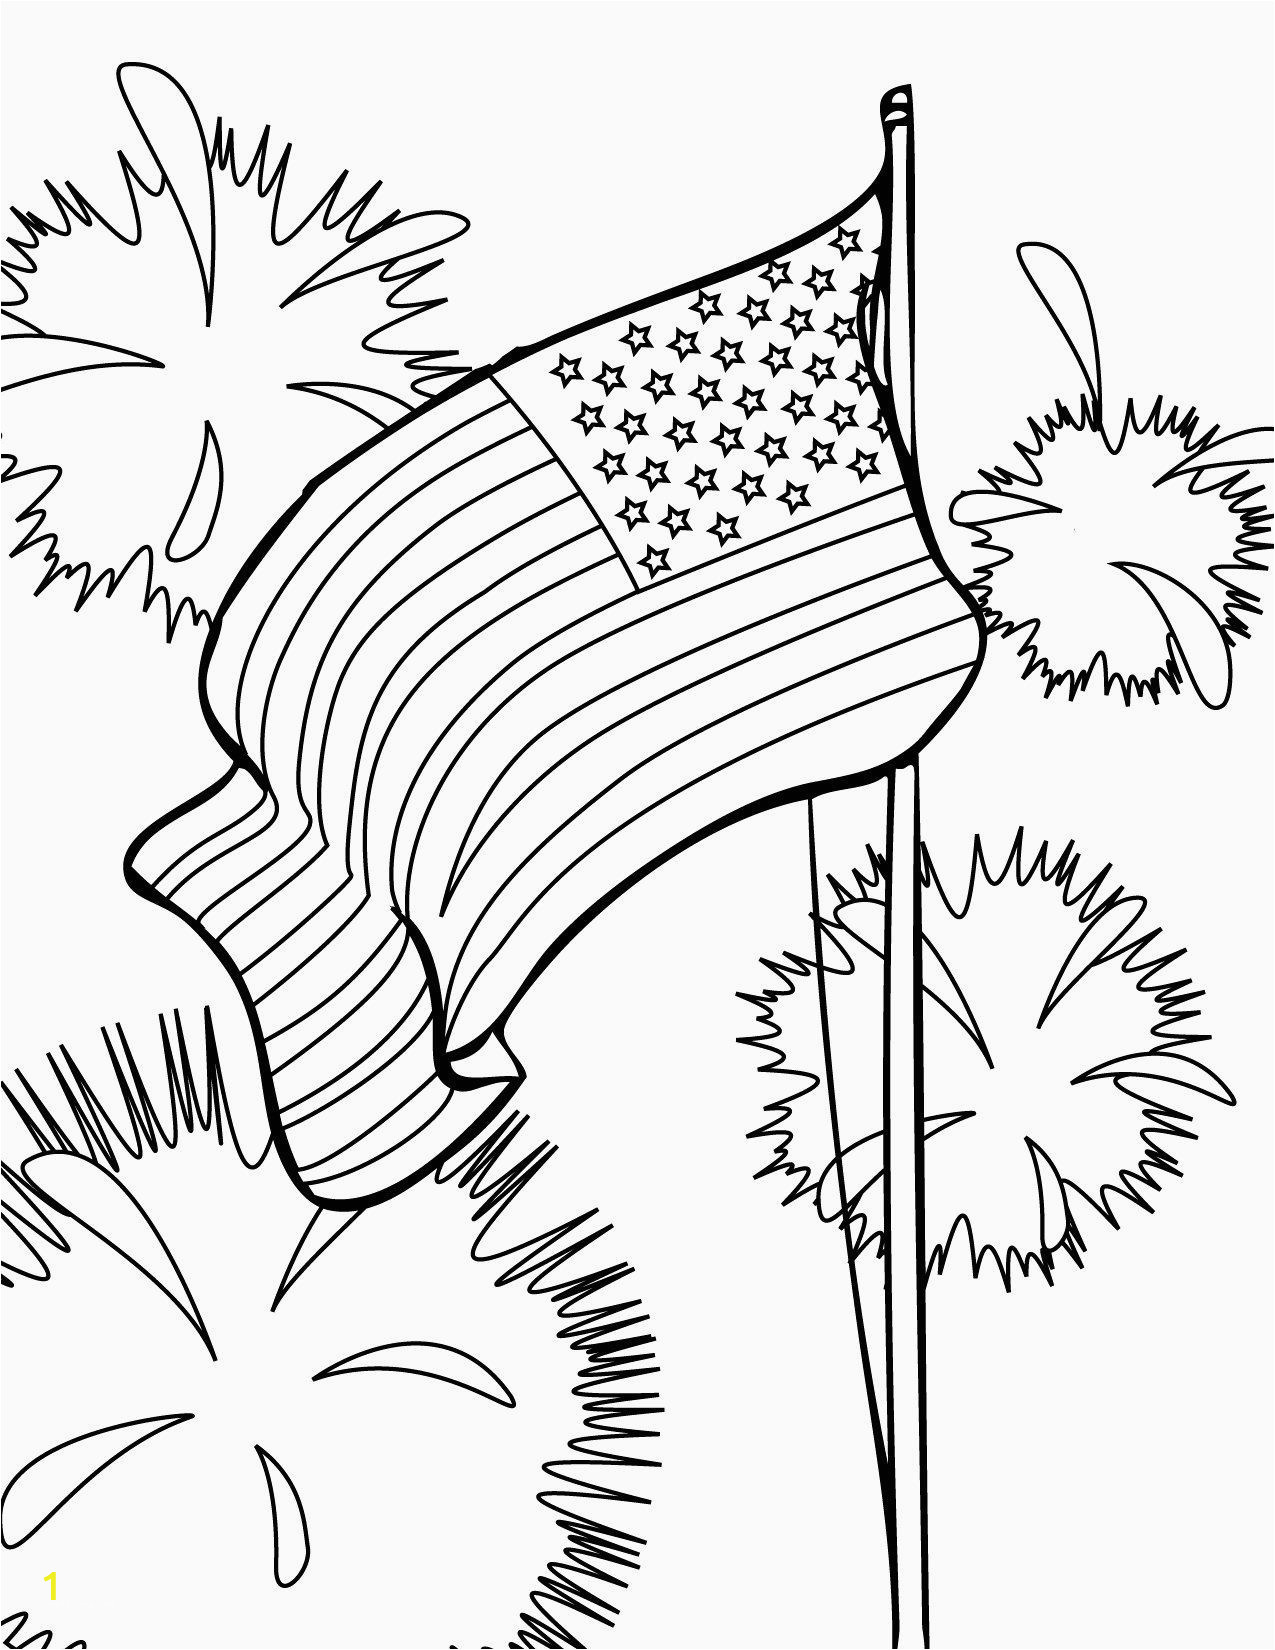 free printable 4th of july coloring pages for adults inspirational italian flag coloring sheet elegant the best free challenge of free printable 4th of july coloring pages for adults